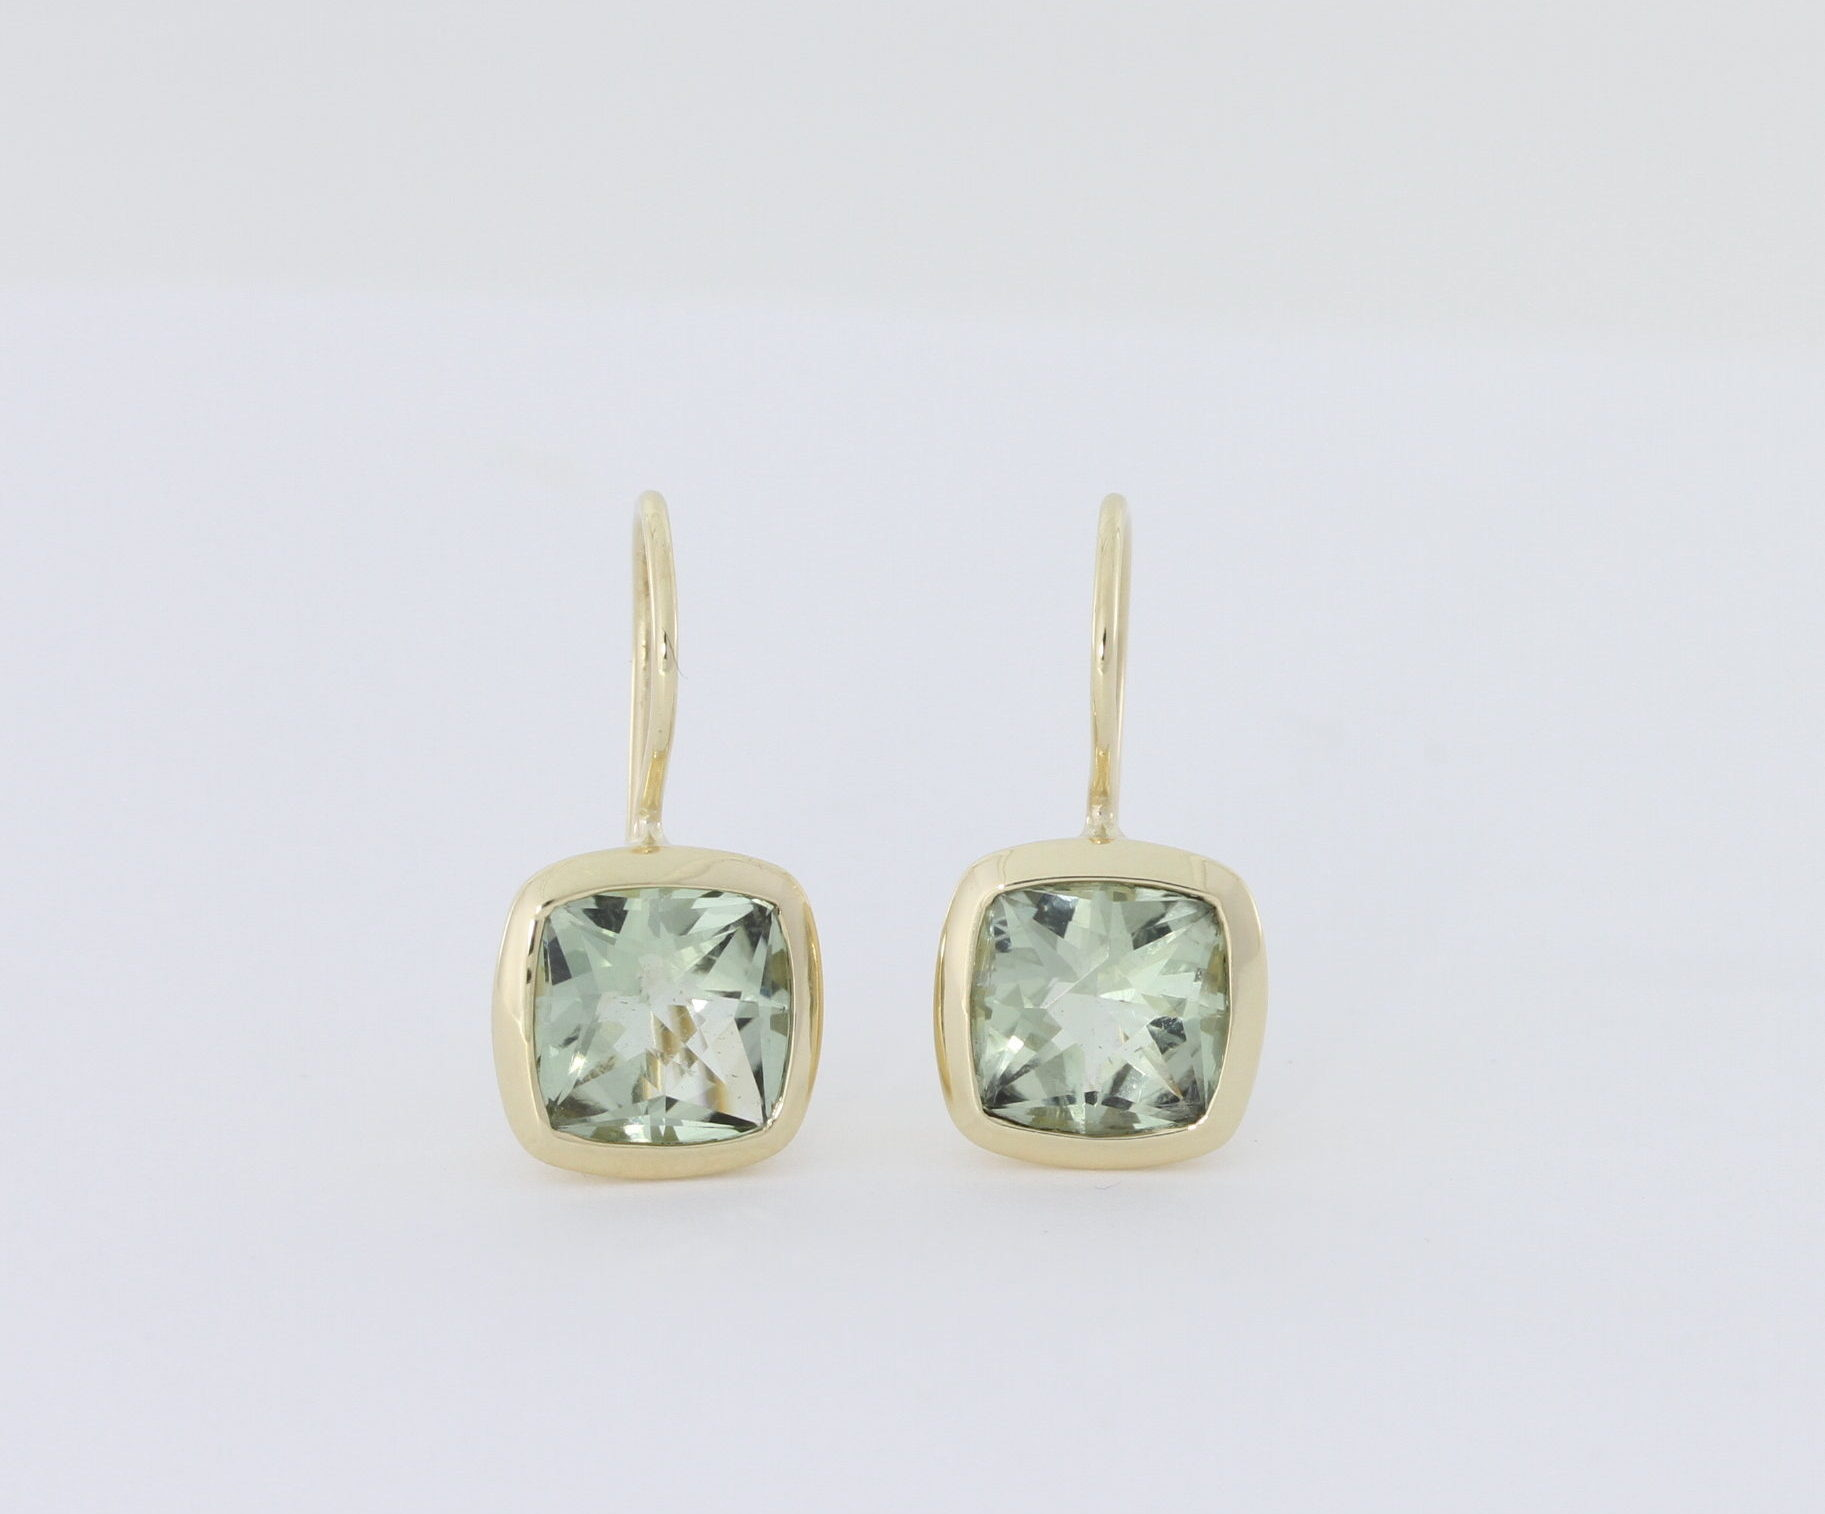 Payet green quartz cushion cut earrings